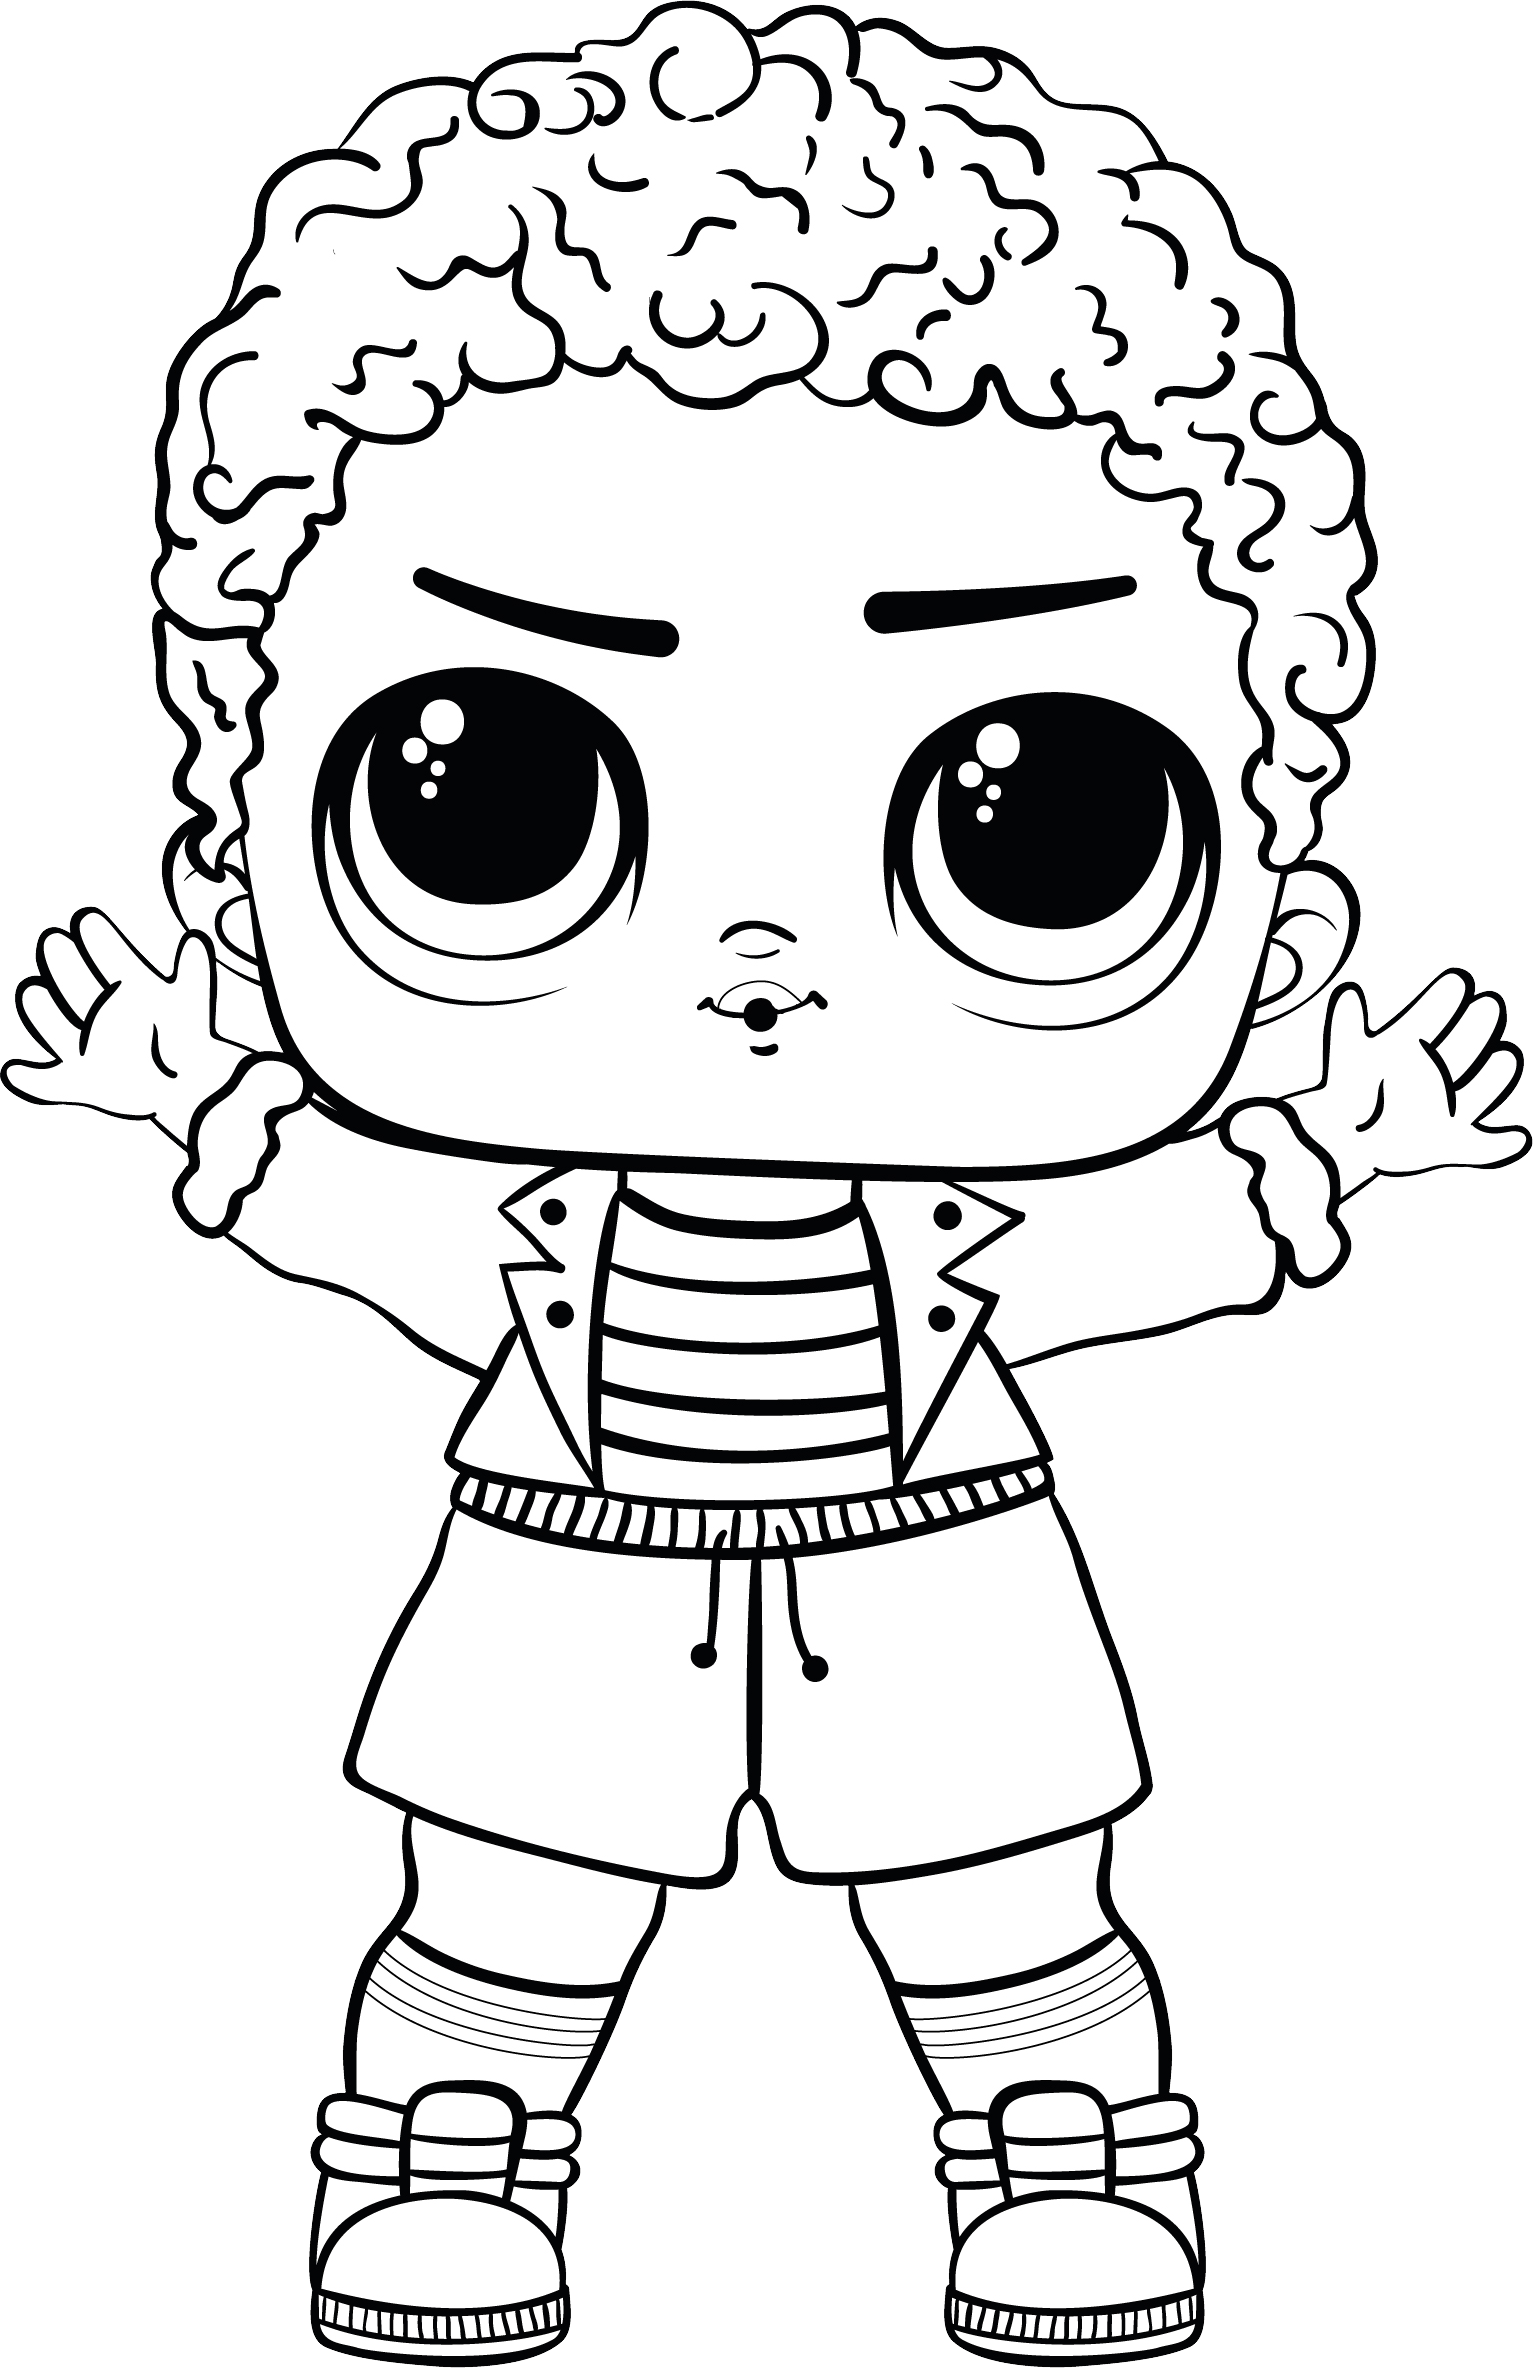 L.O.L. Surprise! doll PNG.